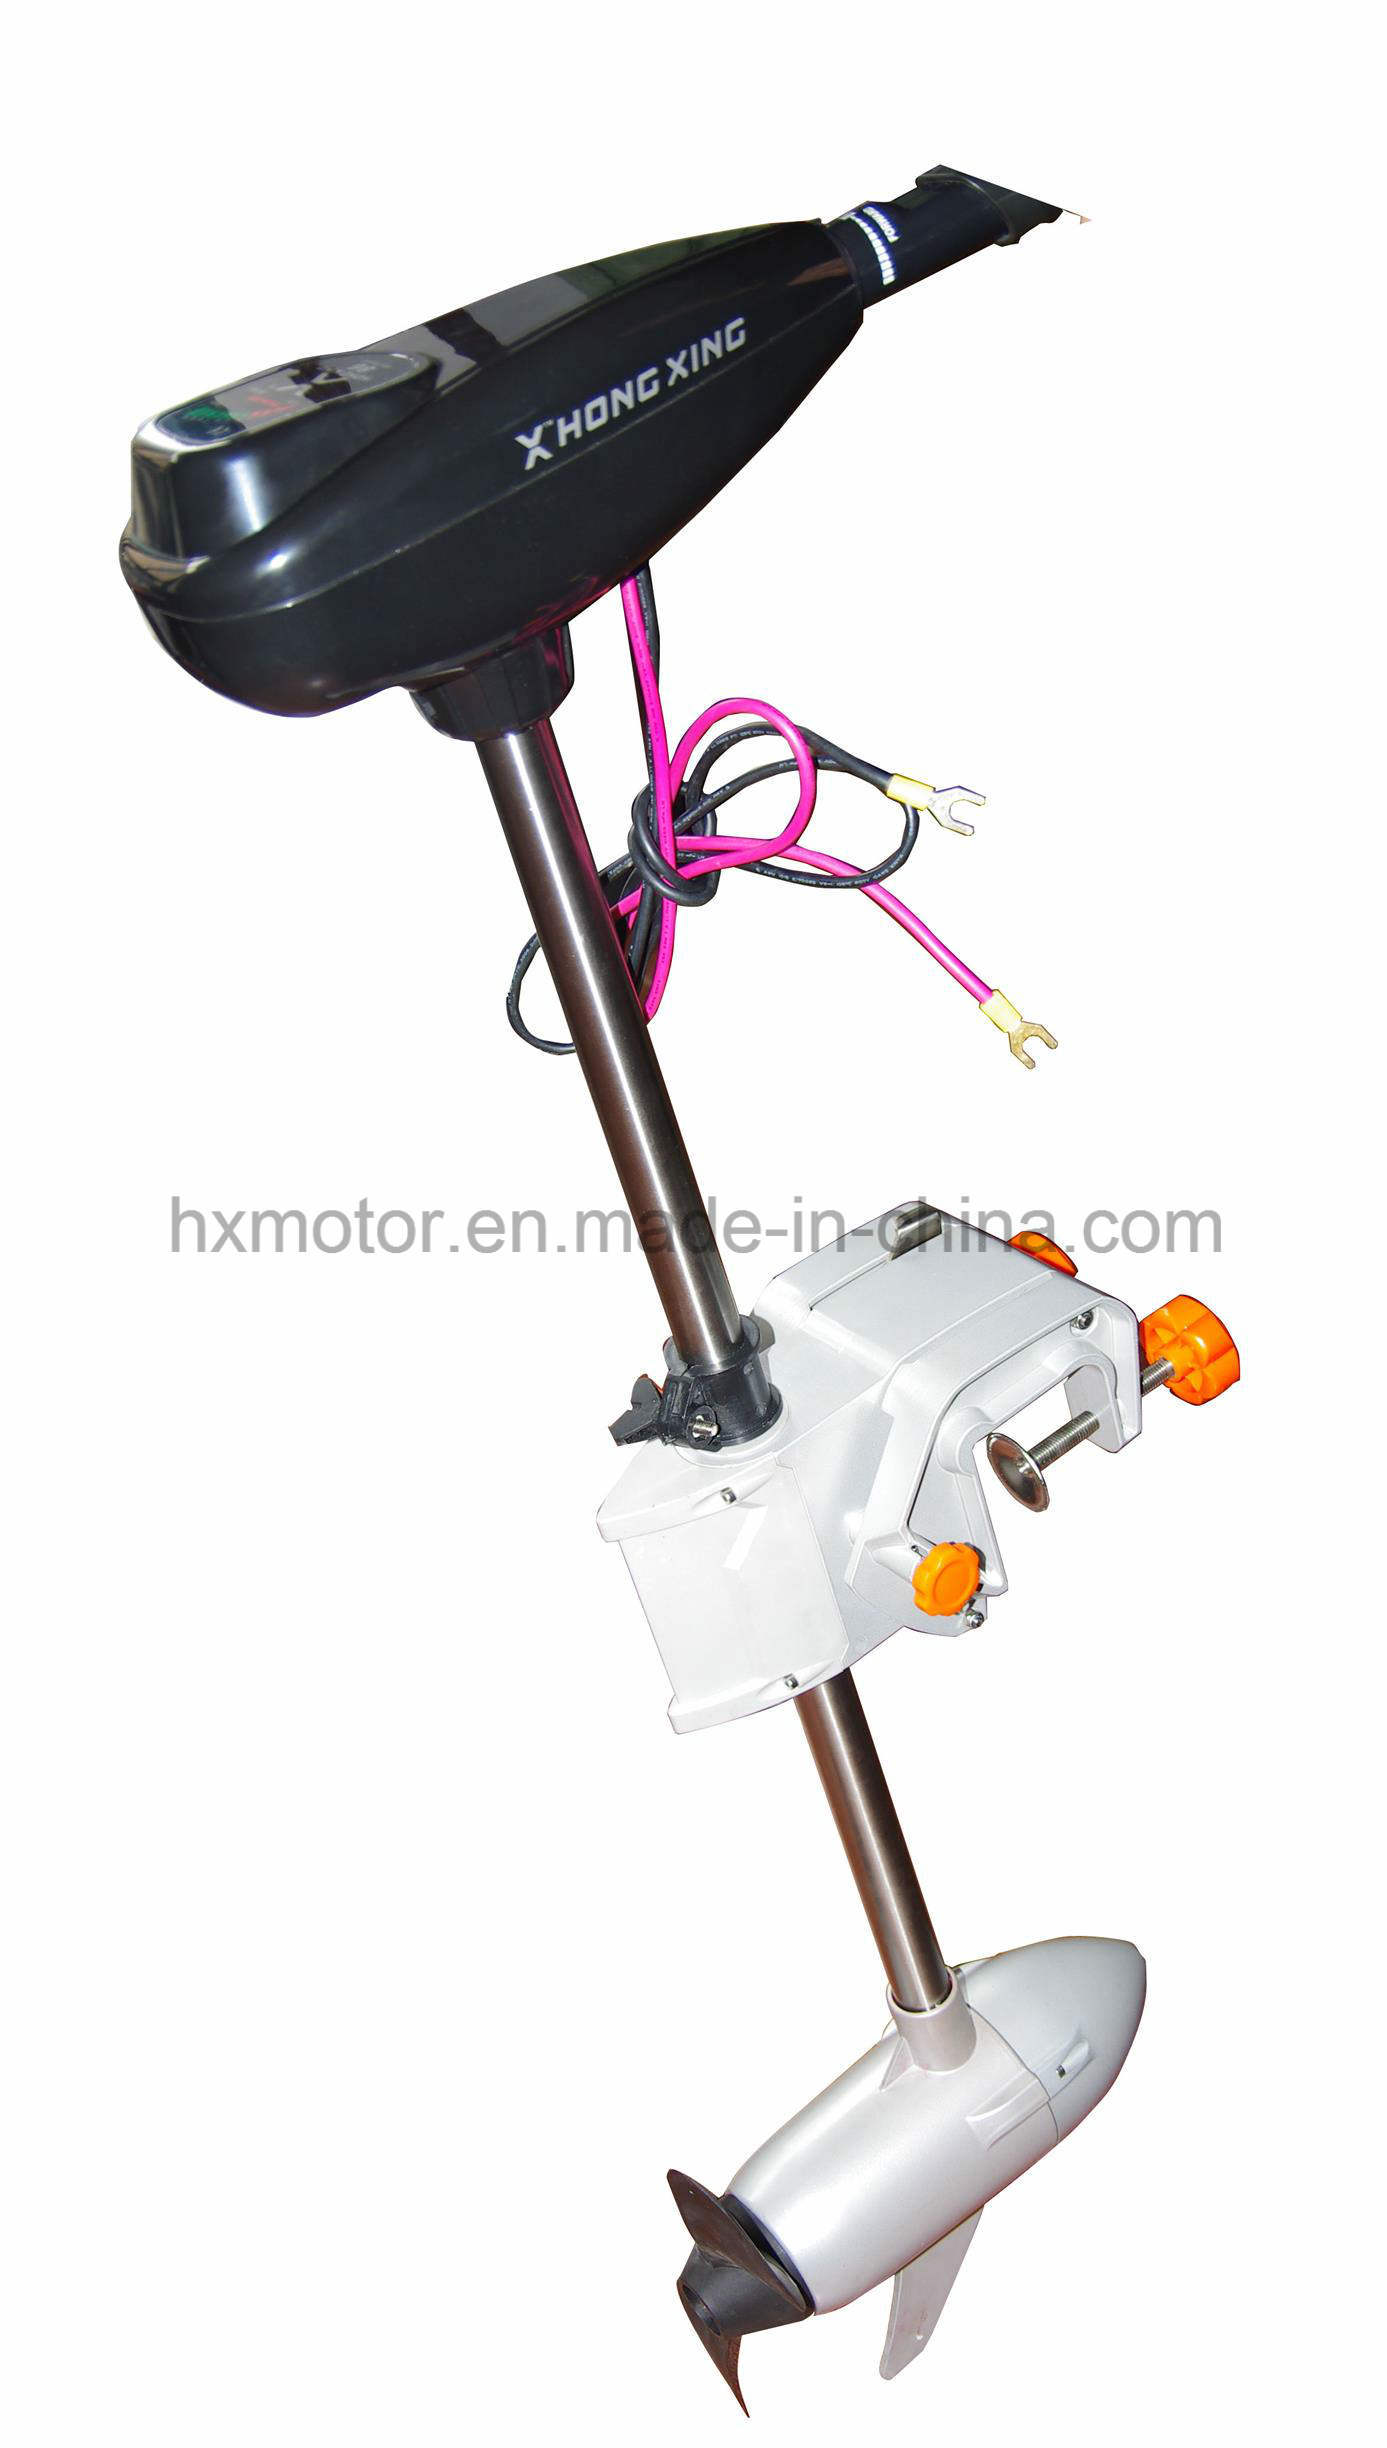 China 200lbs Brushless Electric Trolling Motor with Stepless Speed